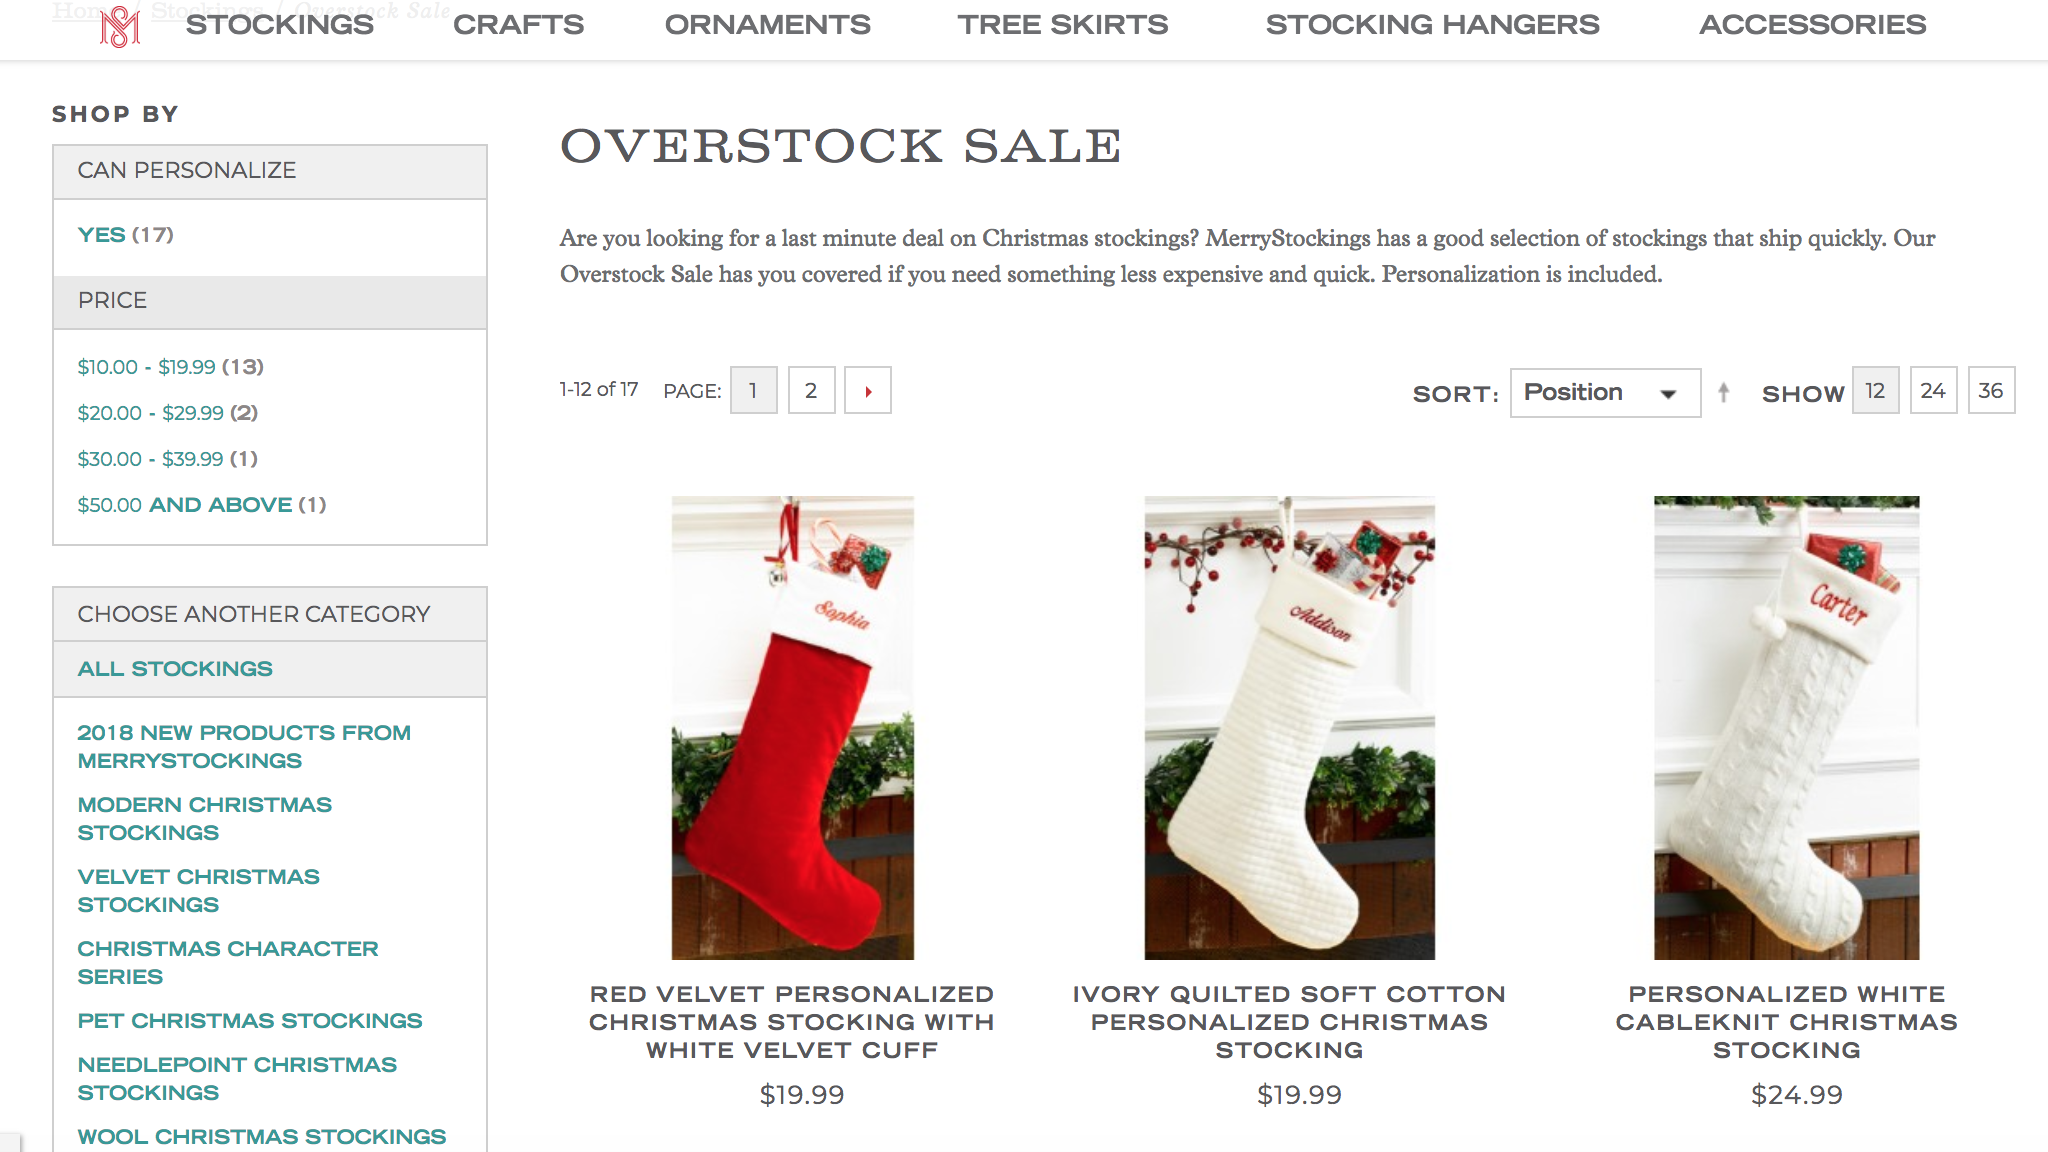 Personalized Christmas Stockings / Personalized Christmas Stockings